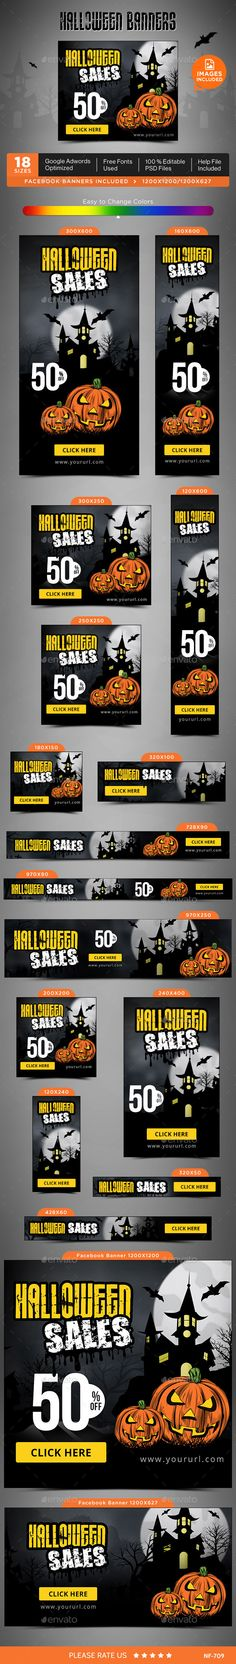 Halloween Web Banners Template PSD #design #ad Download…